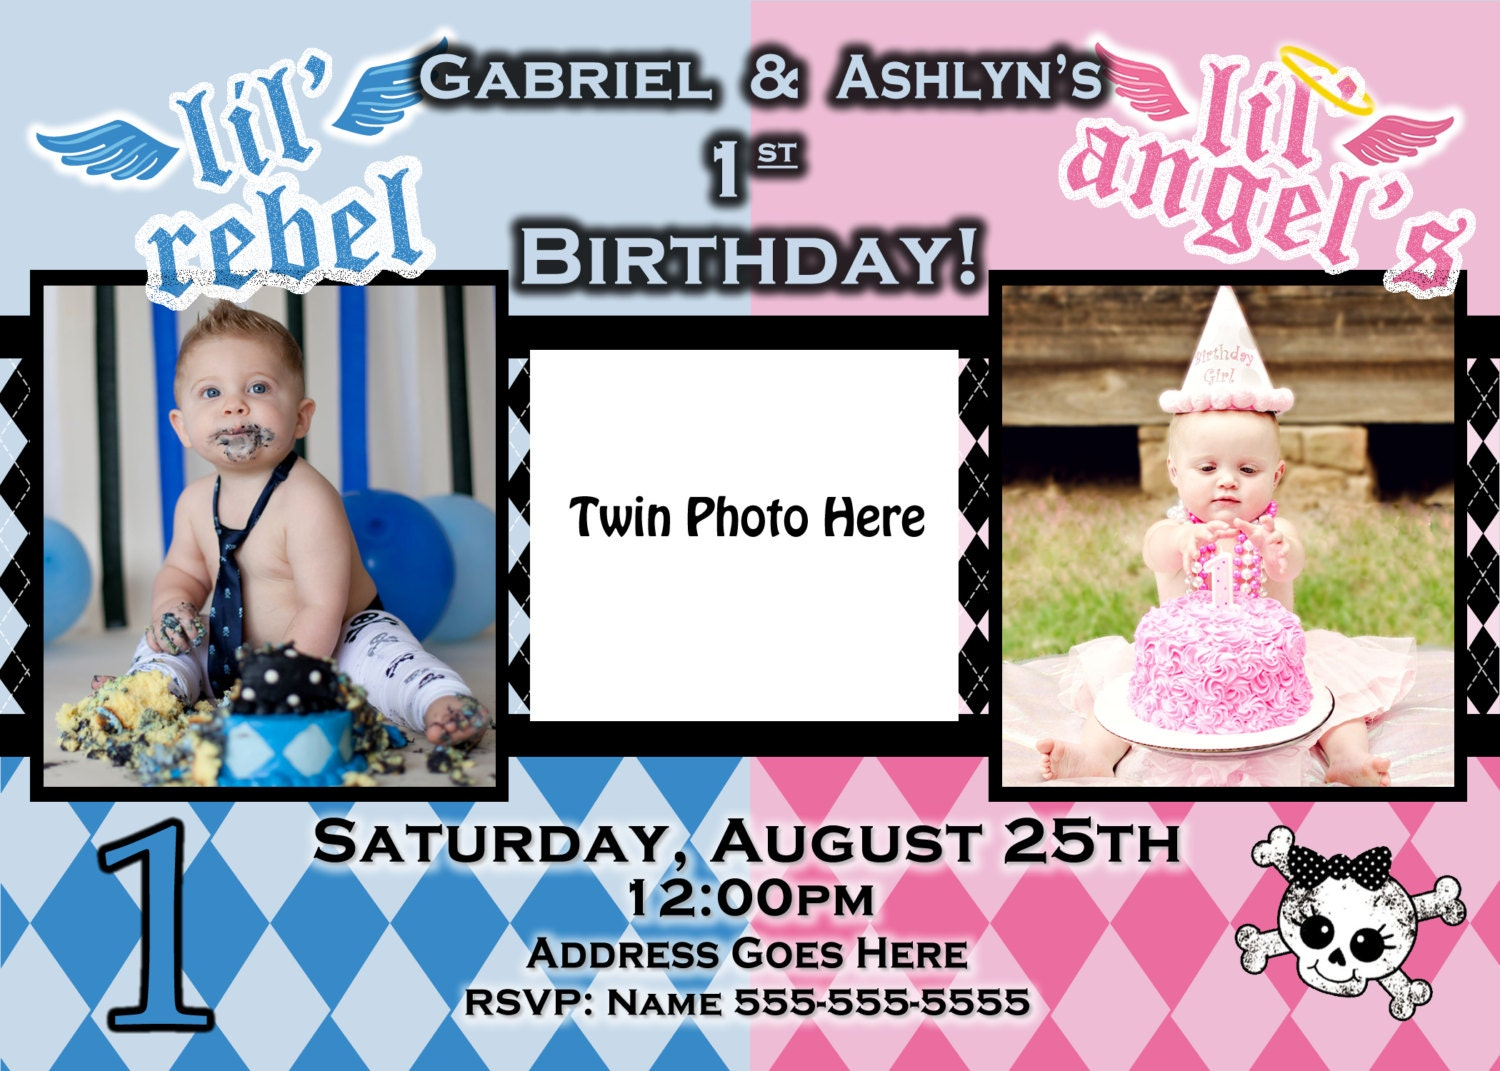 Birthday Themes Boy Girl Twins Image Inspiration of Cake and